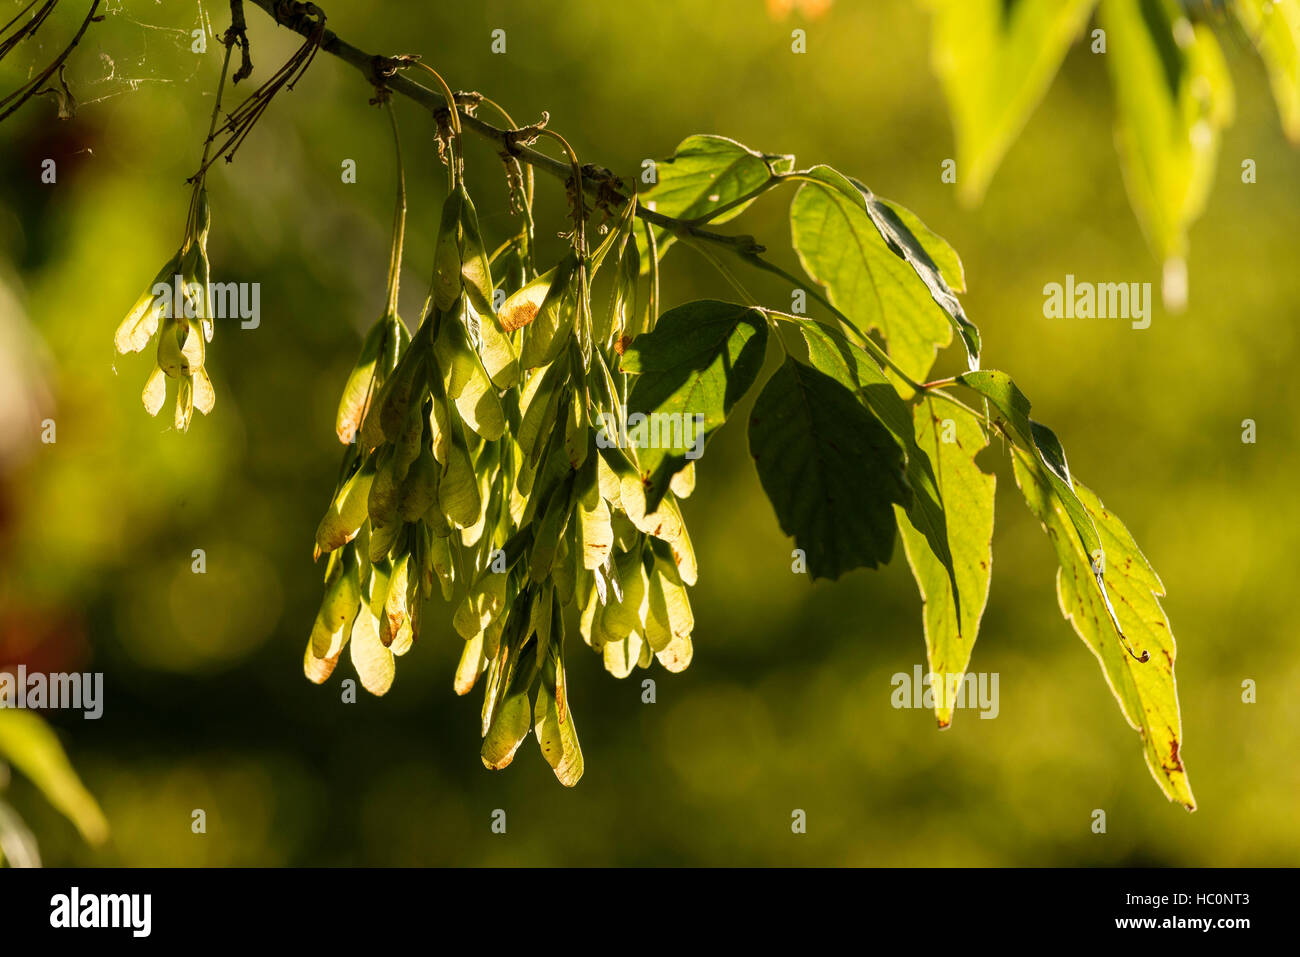 Box elder branches with seed pods, Wallowa Valley, Oregon. - Stock Image